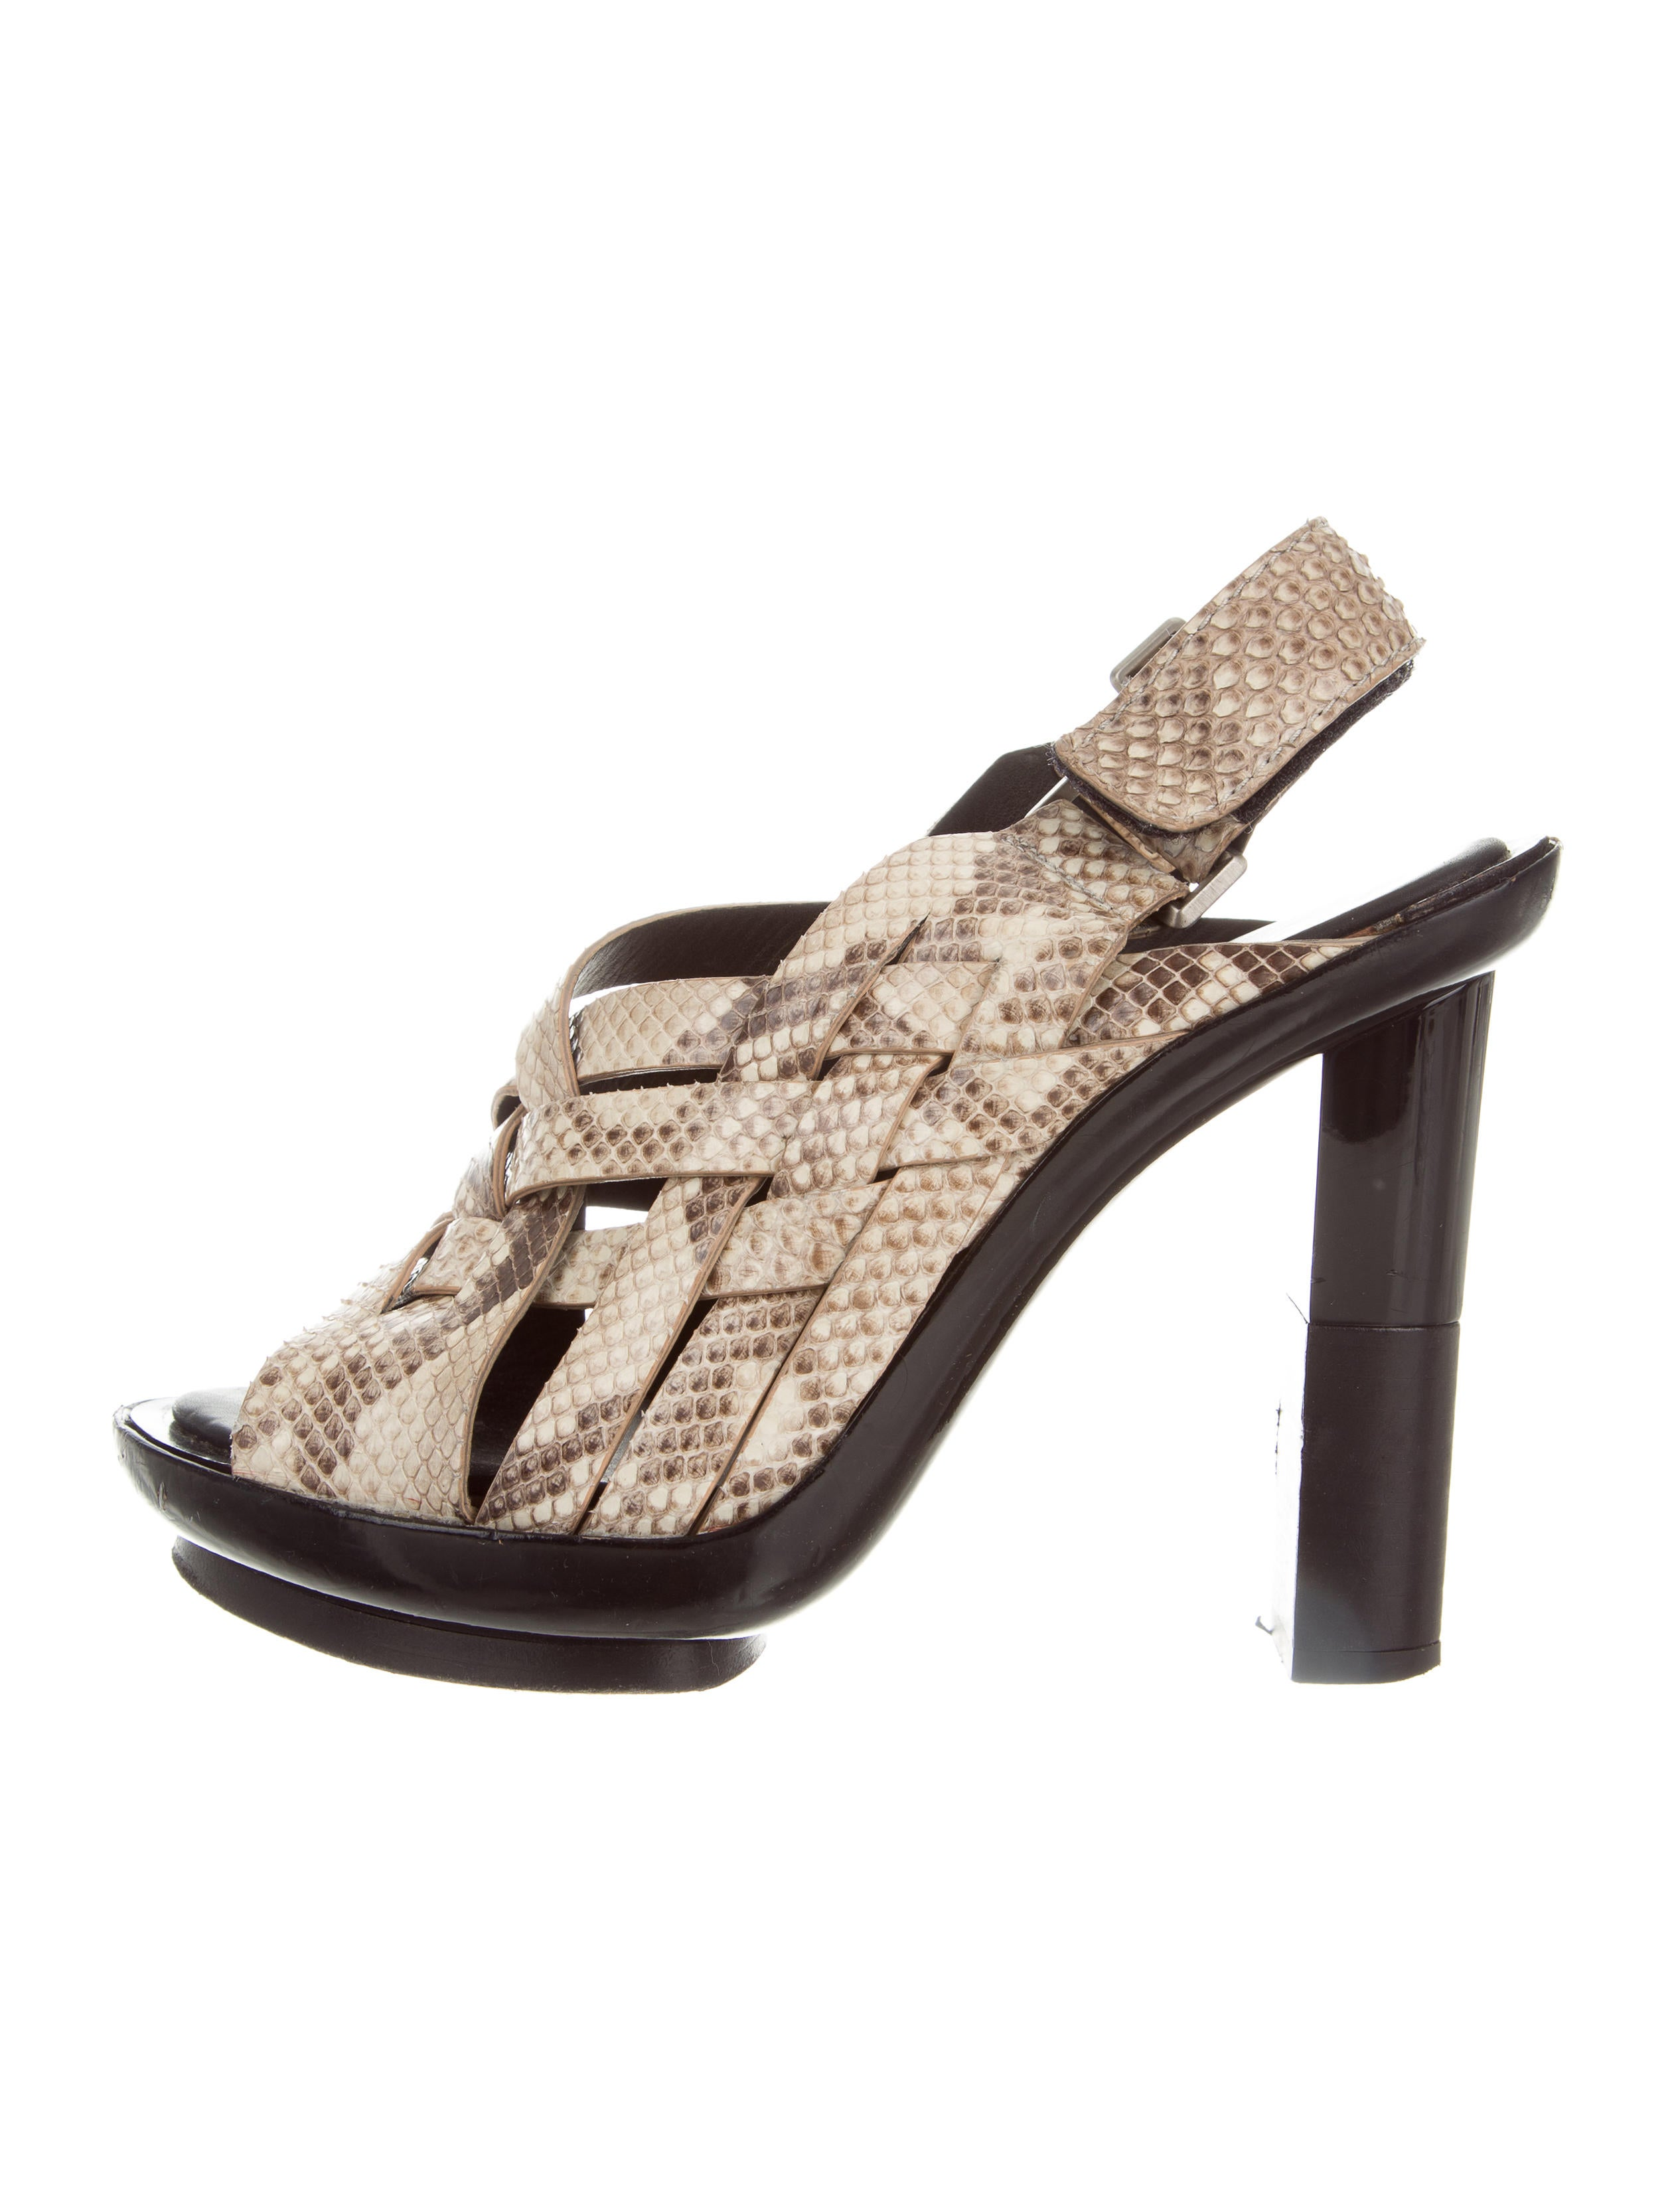 Calvin Klein Collection Multistrap Slingback Sandals free shipping pay with paypal cheap for sale PihuvR